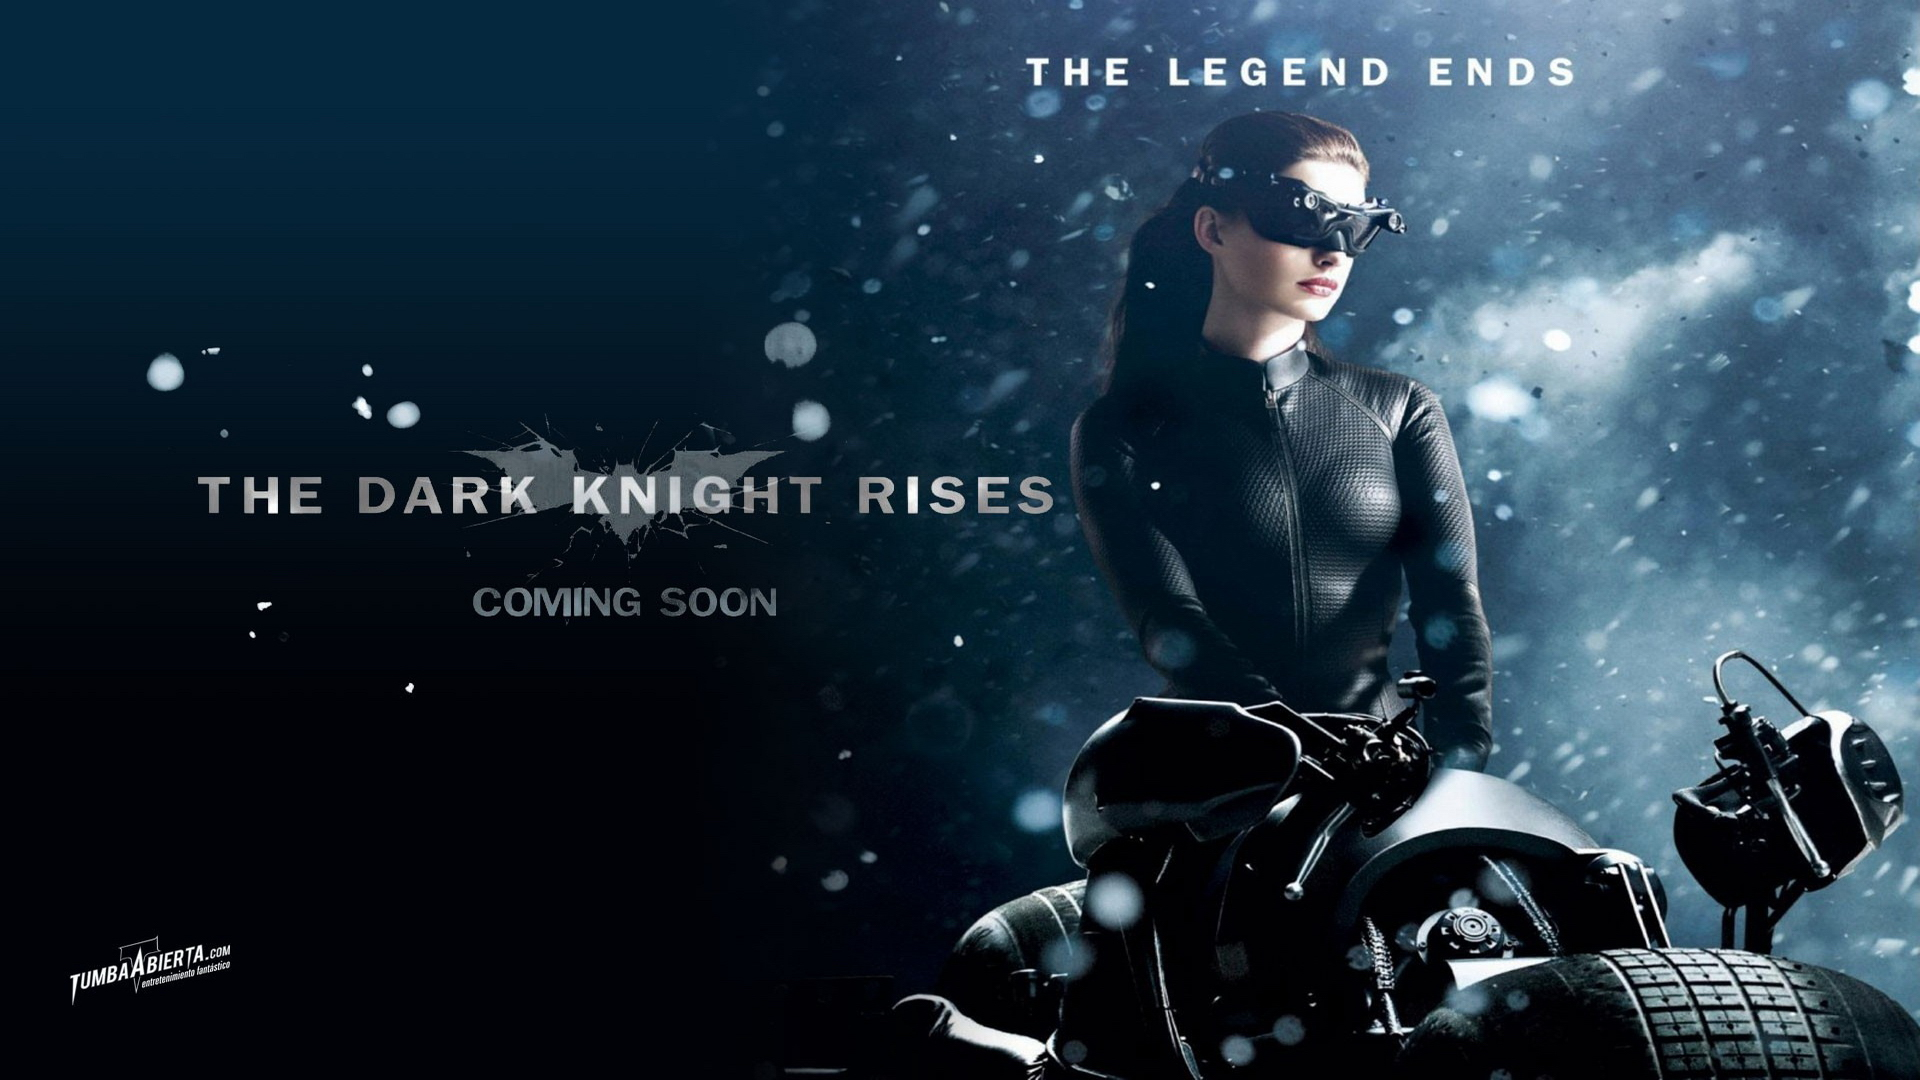 201207the dsktop backgrounds catwoman wallpapers latestjpg 1920x1080